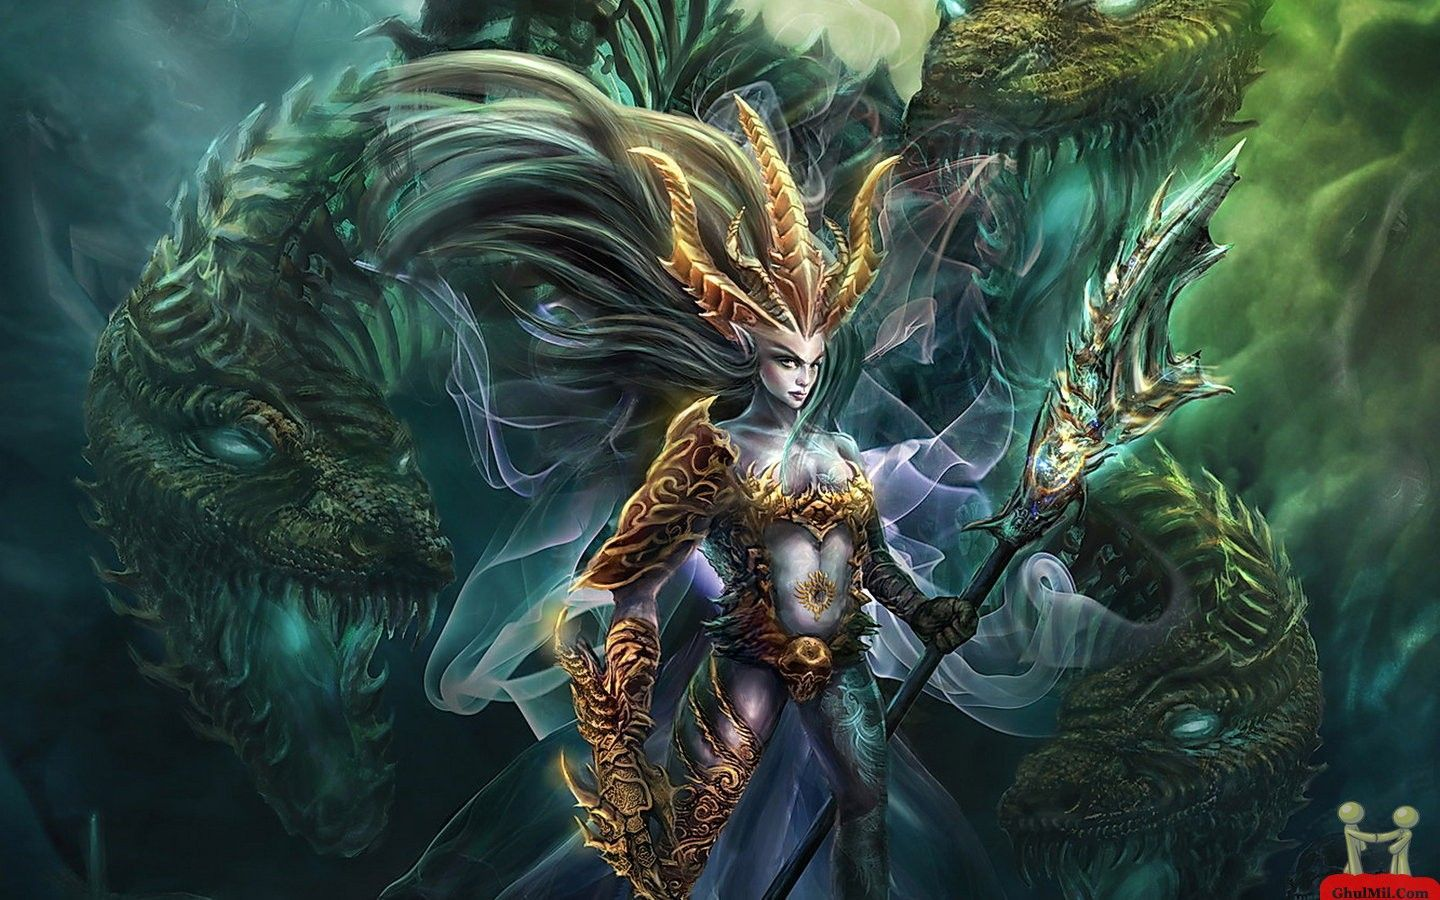 1440x900 Pictures Dragons With Women   3D Strange Girl With Dragon Wallpaper ...